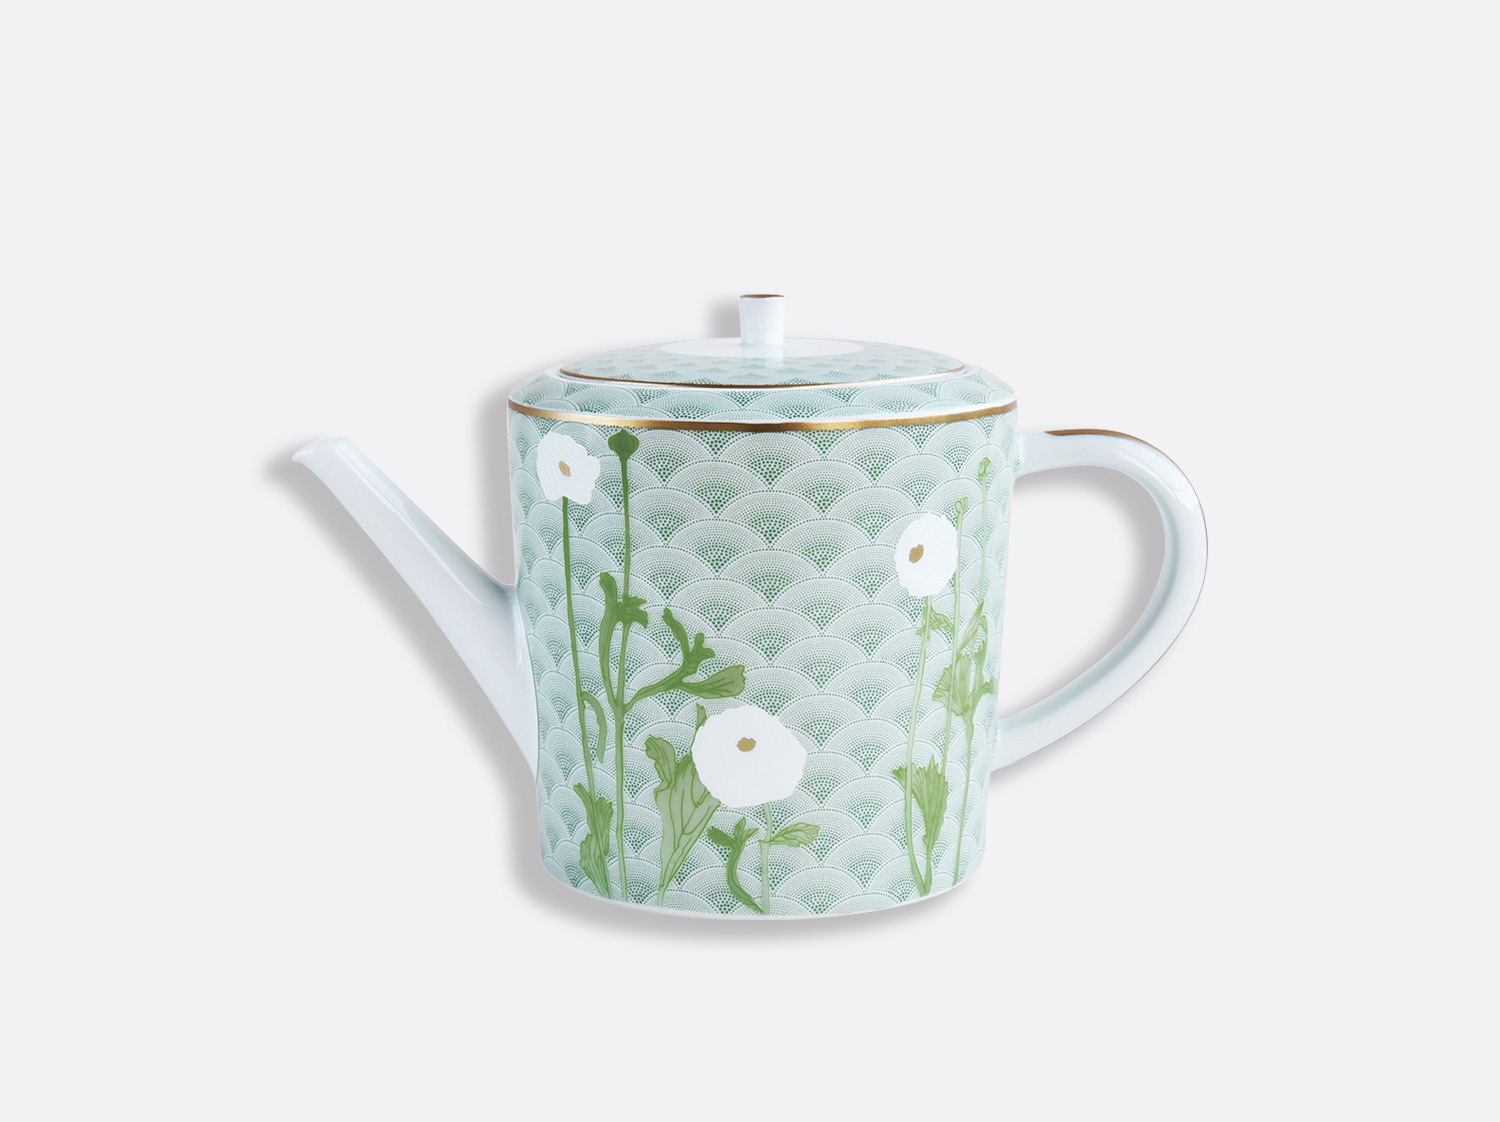 Verseuse 1 L en porcelaine de la collection PRAIANA Bernardaud